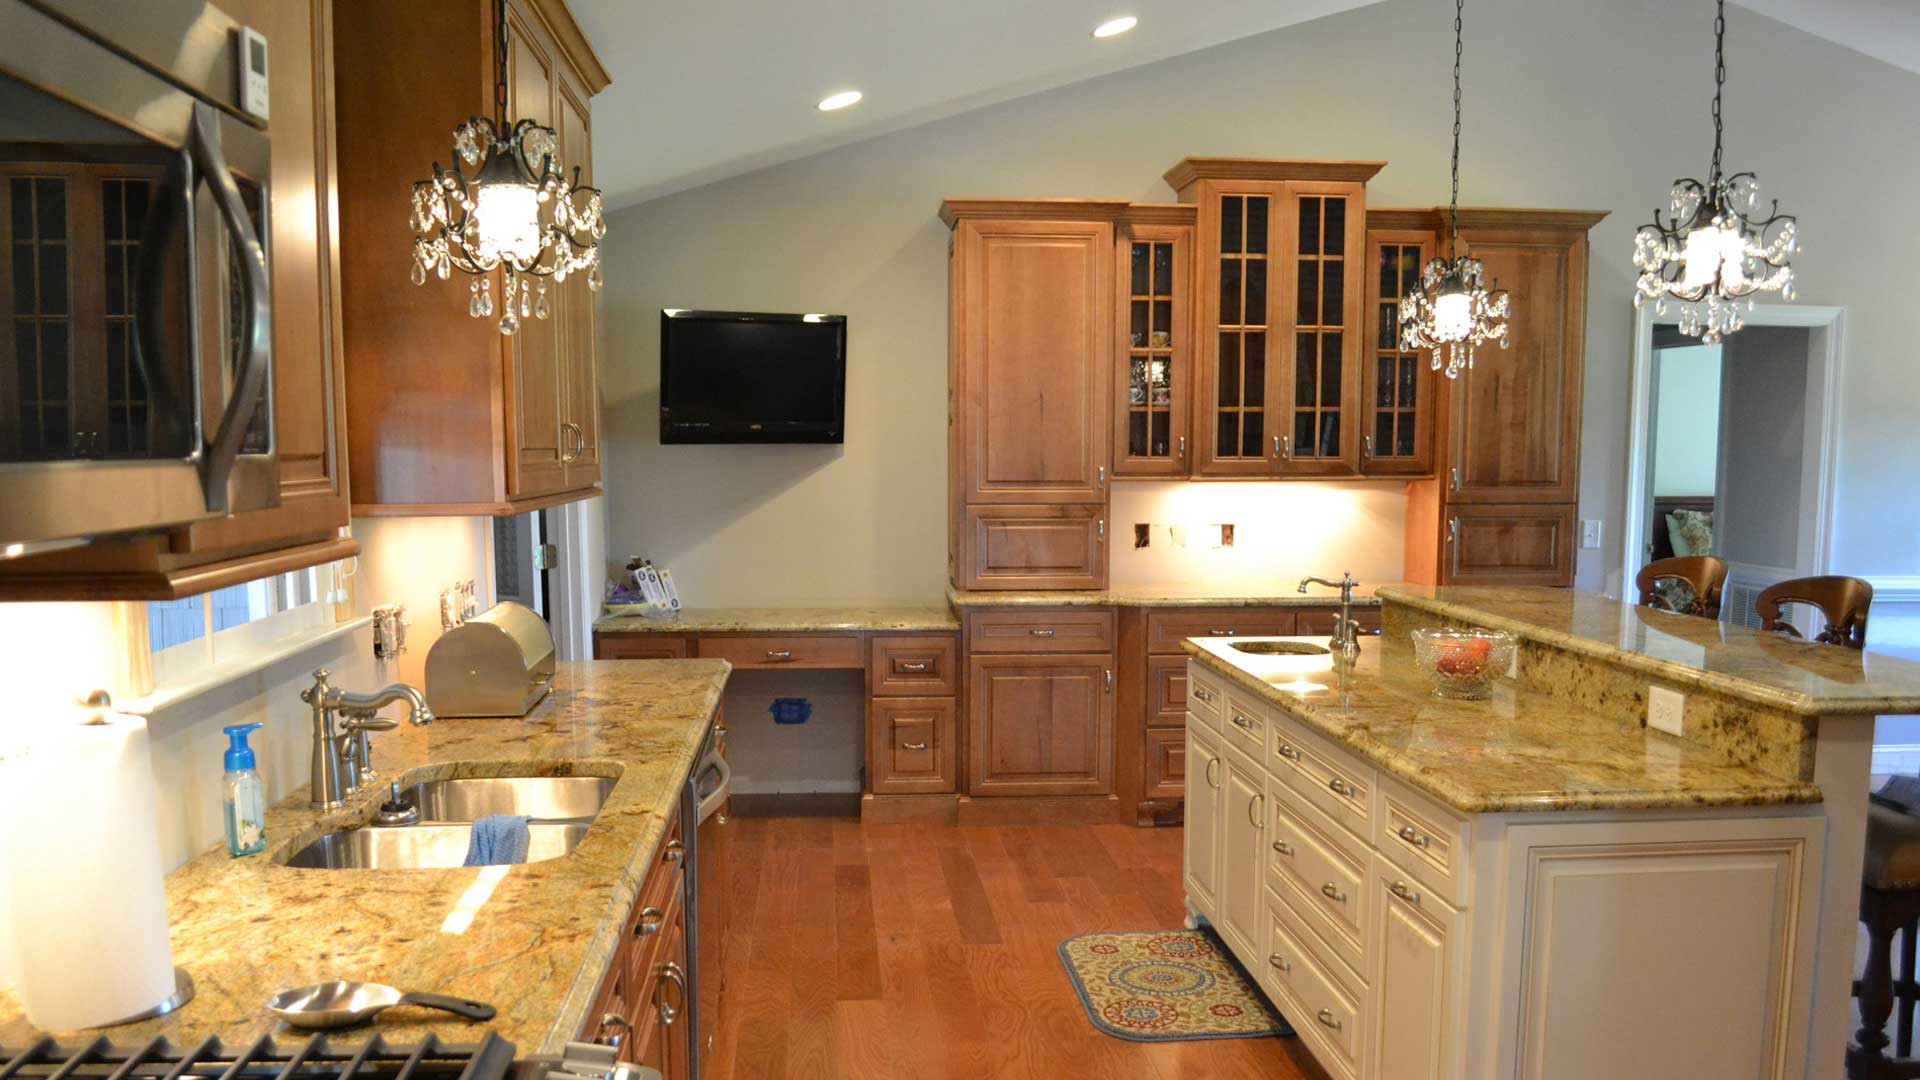 Hd Supply Kitchen Cabinets Edgewood Cabinetry Custom Wood Cabinets Raleigh Nc